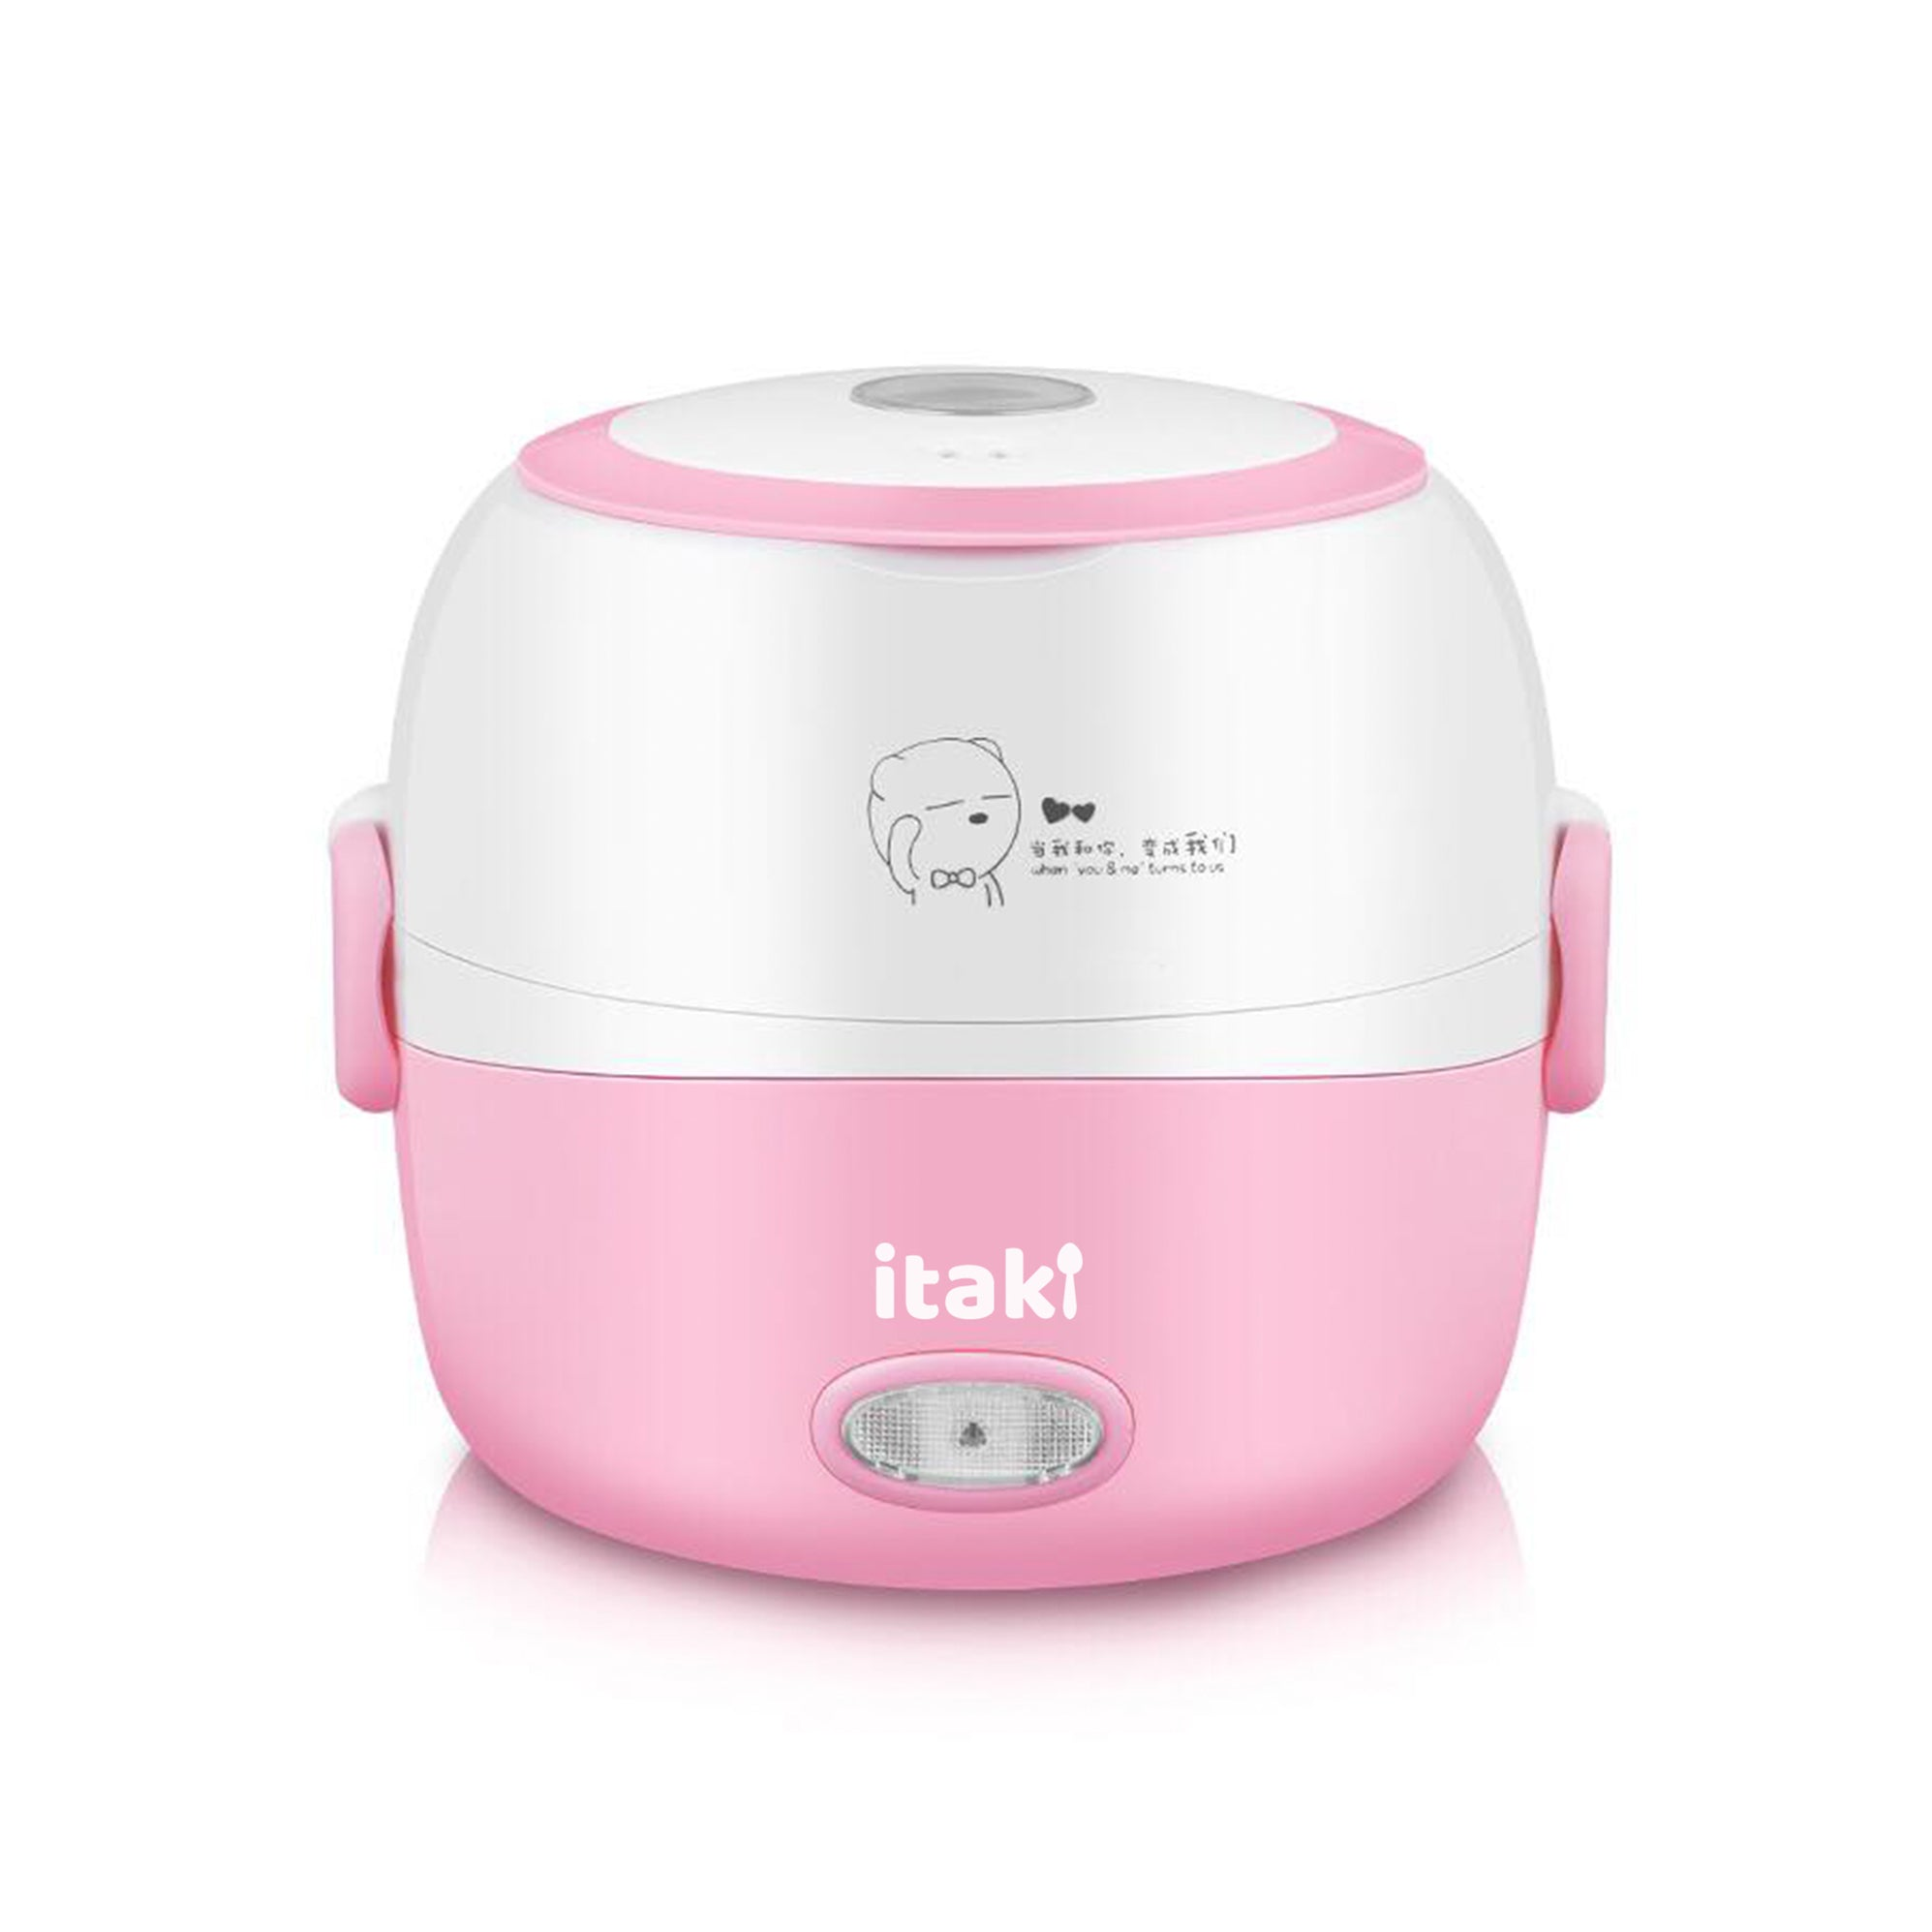 Itaki Chef multifunctional electric lunch box online